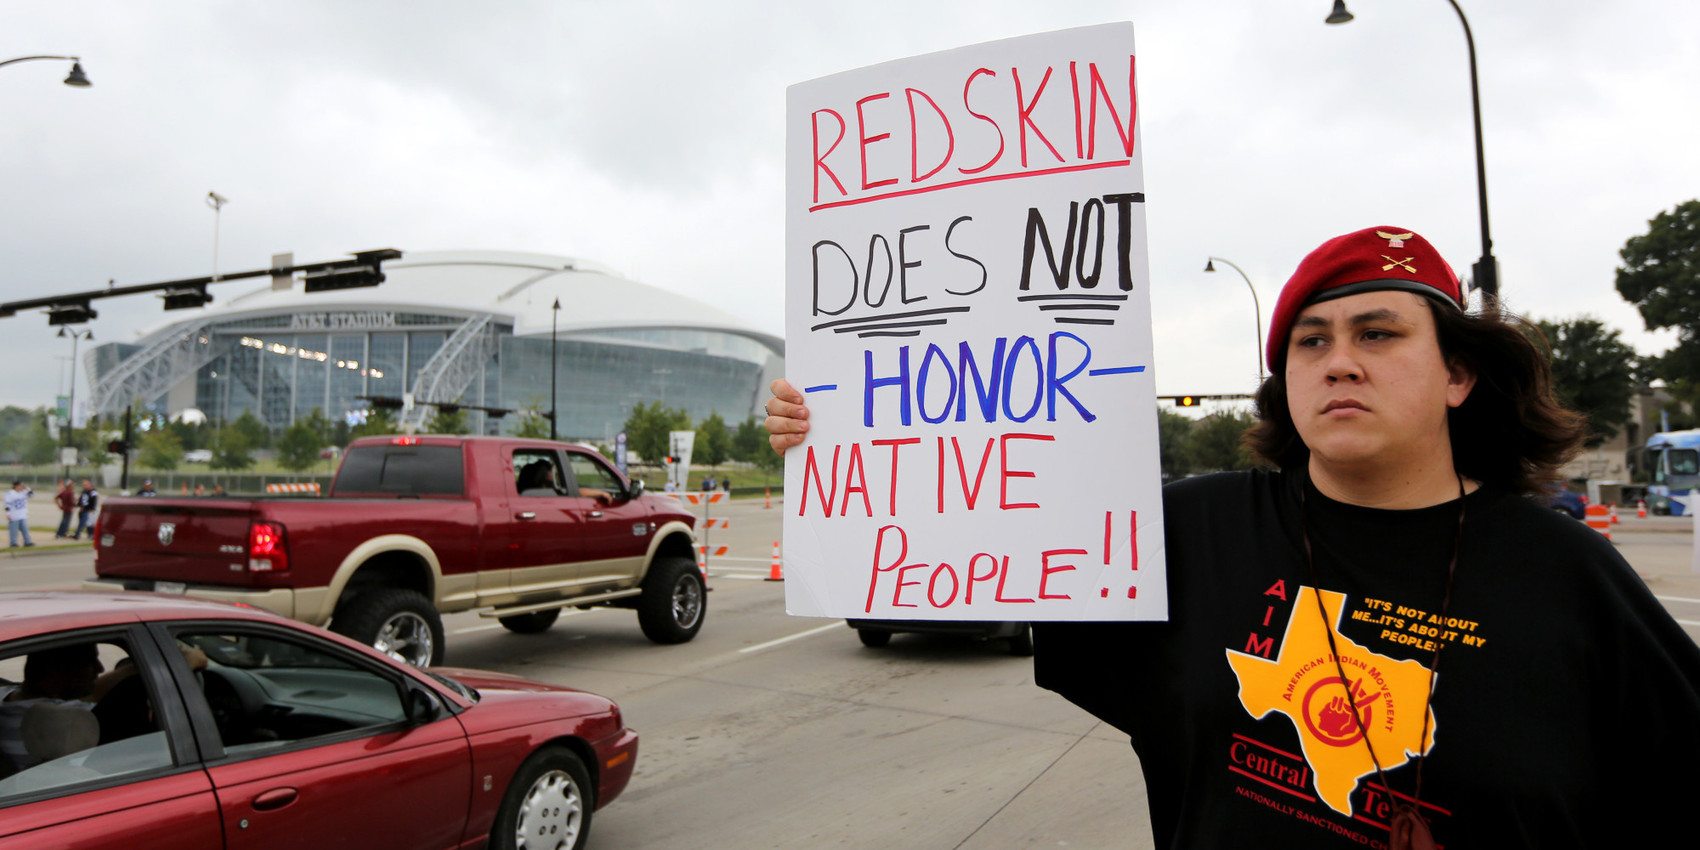 the controversial debate on the use of the washington redskins name and its affiliation with native